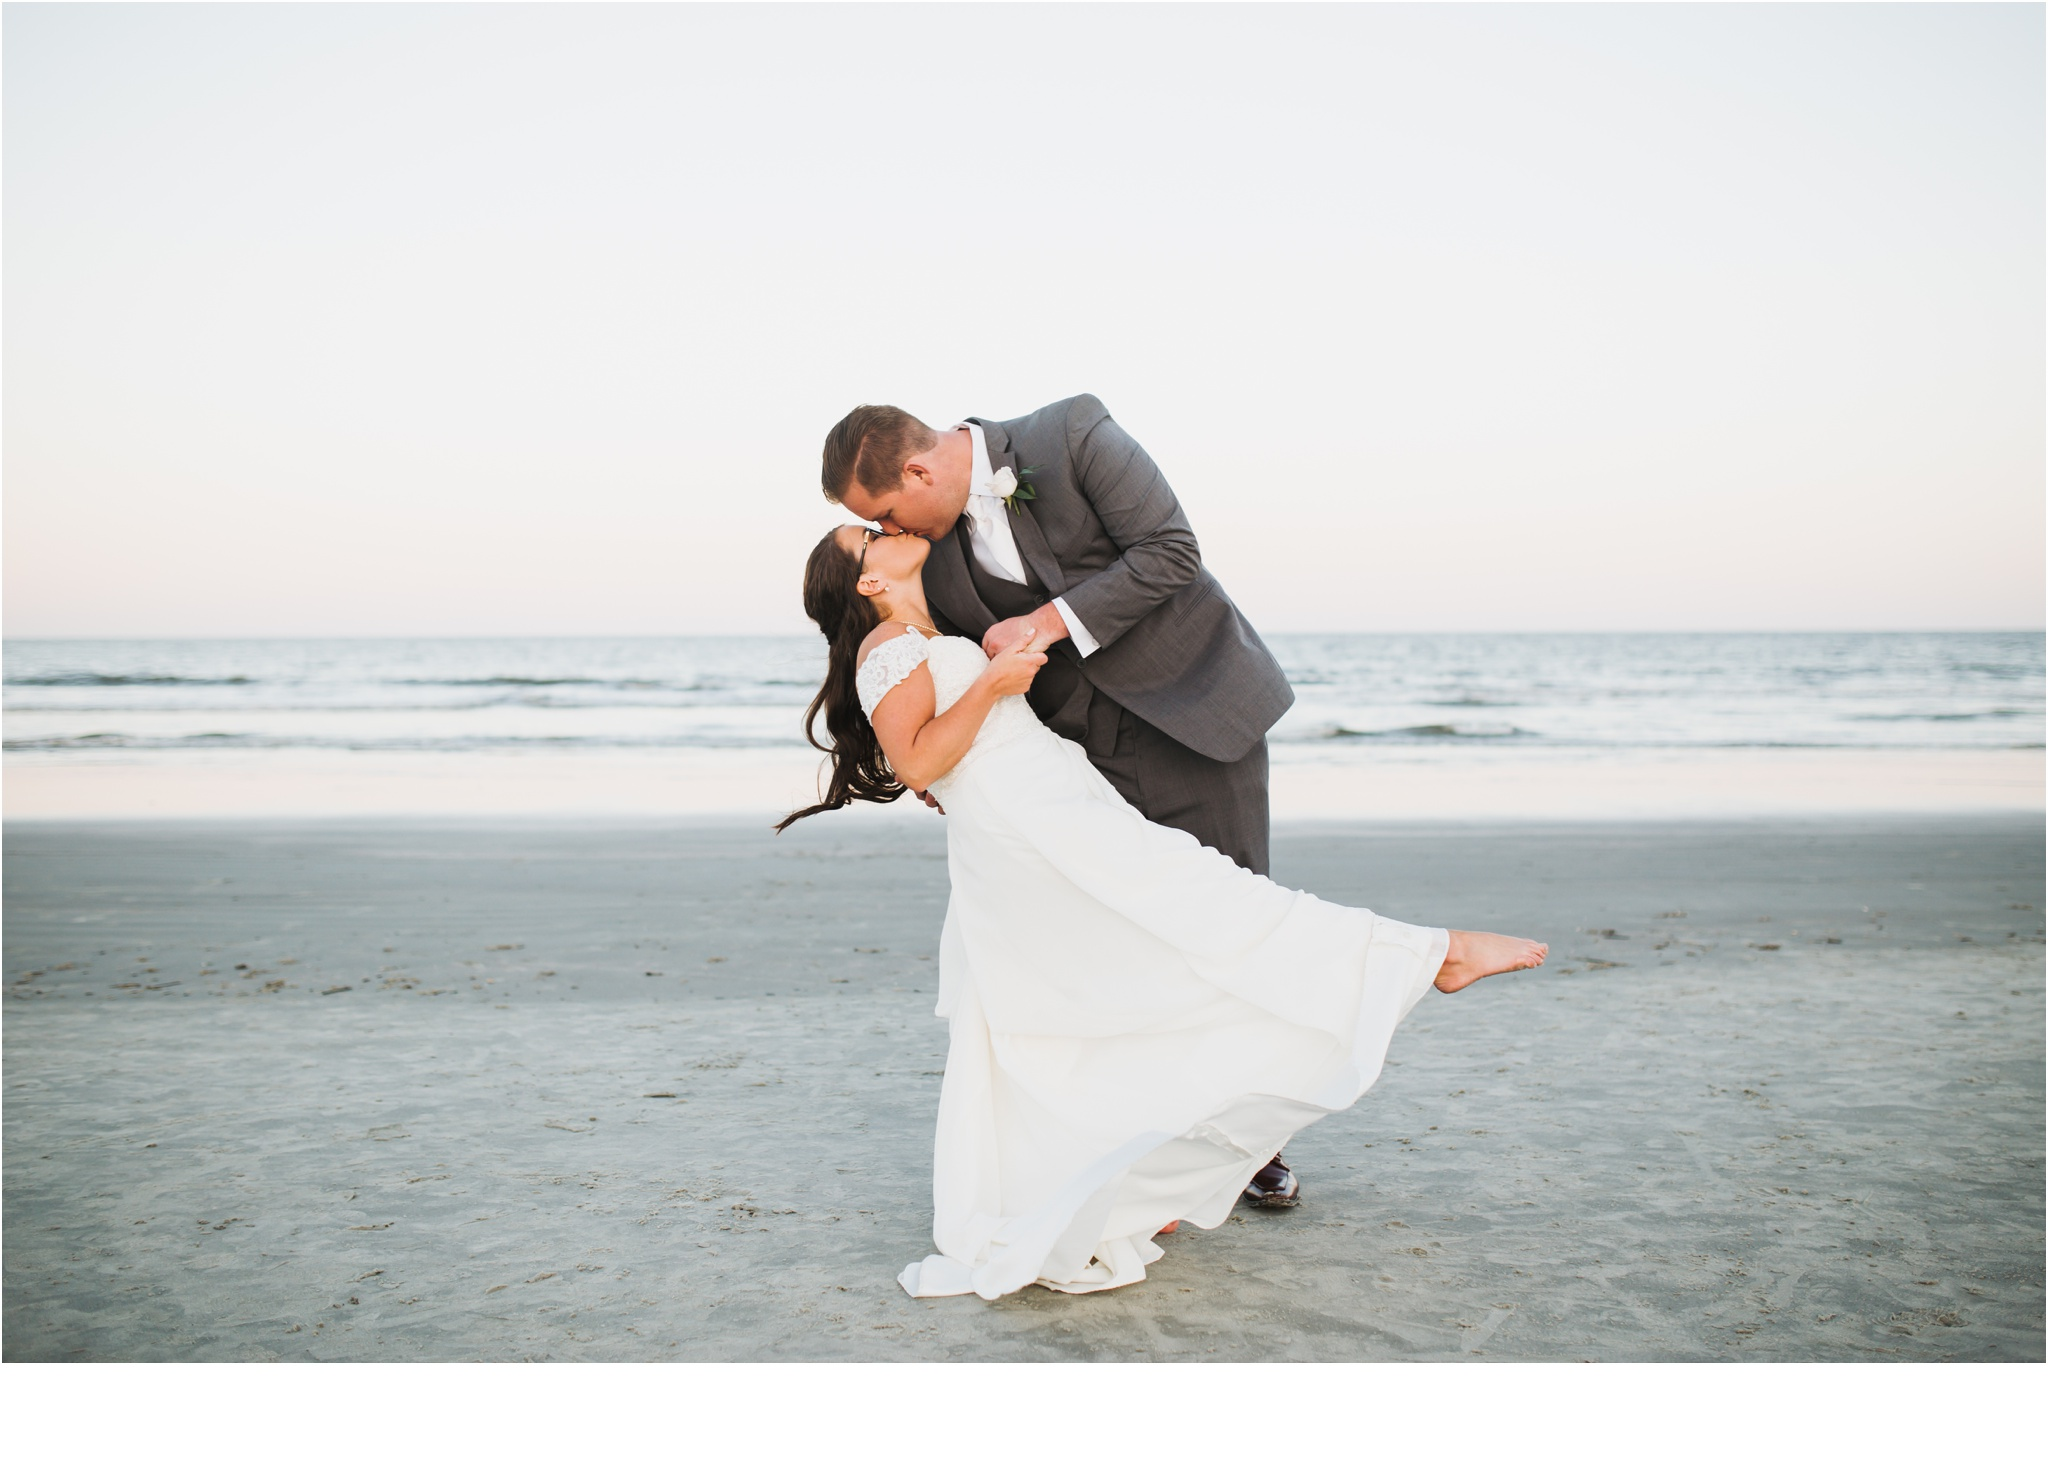 Rainey_Gregg_Photography_St._Simons_Island_Georgia_California_Wedding_Portrait_Photography_1778.jpg